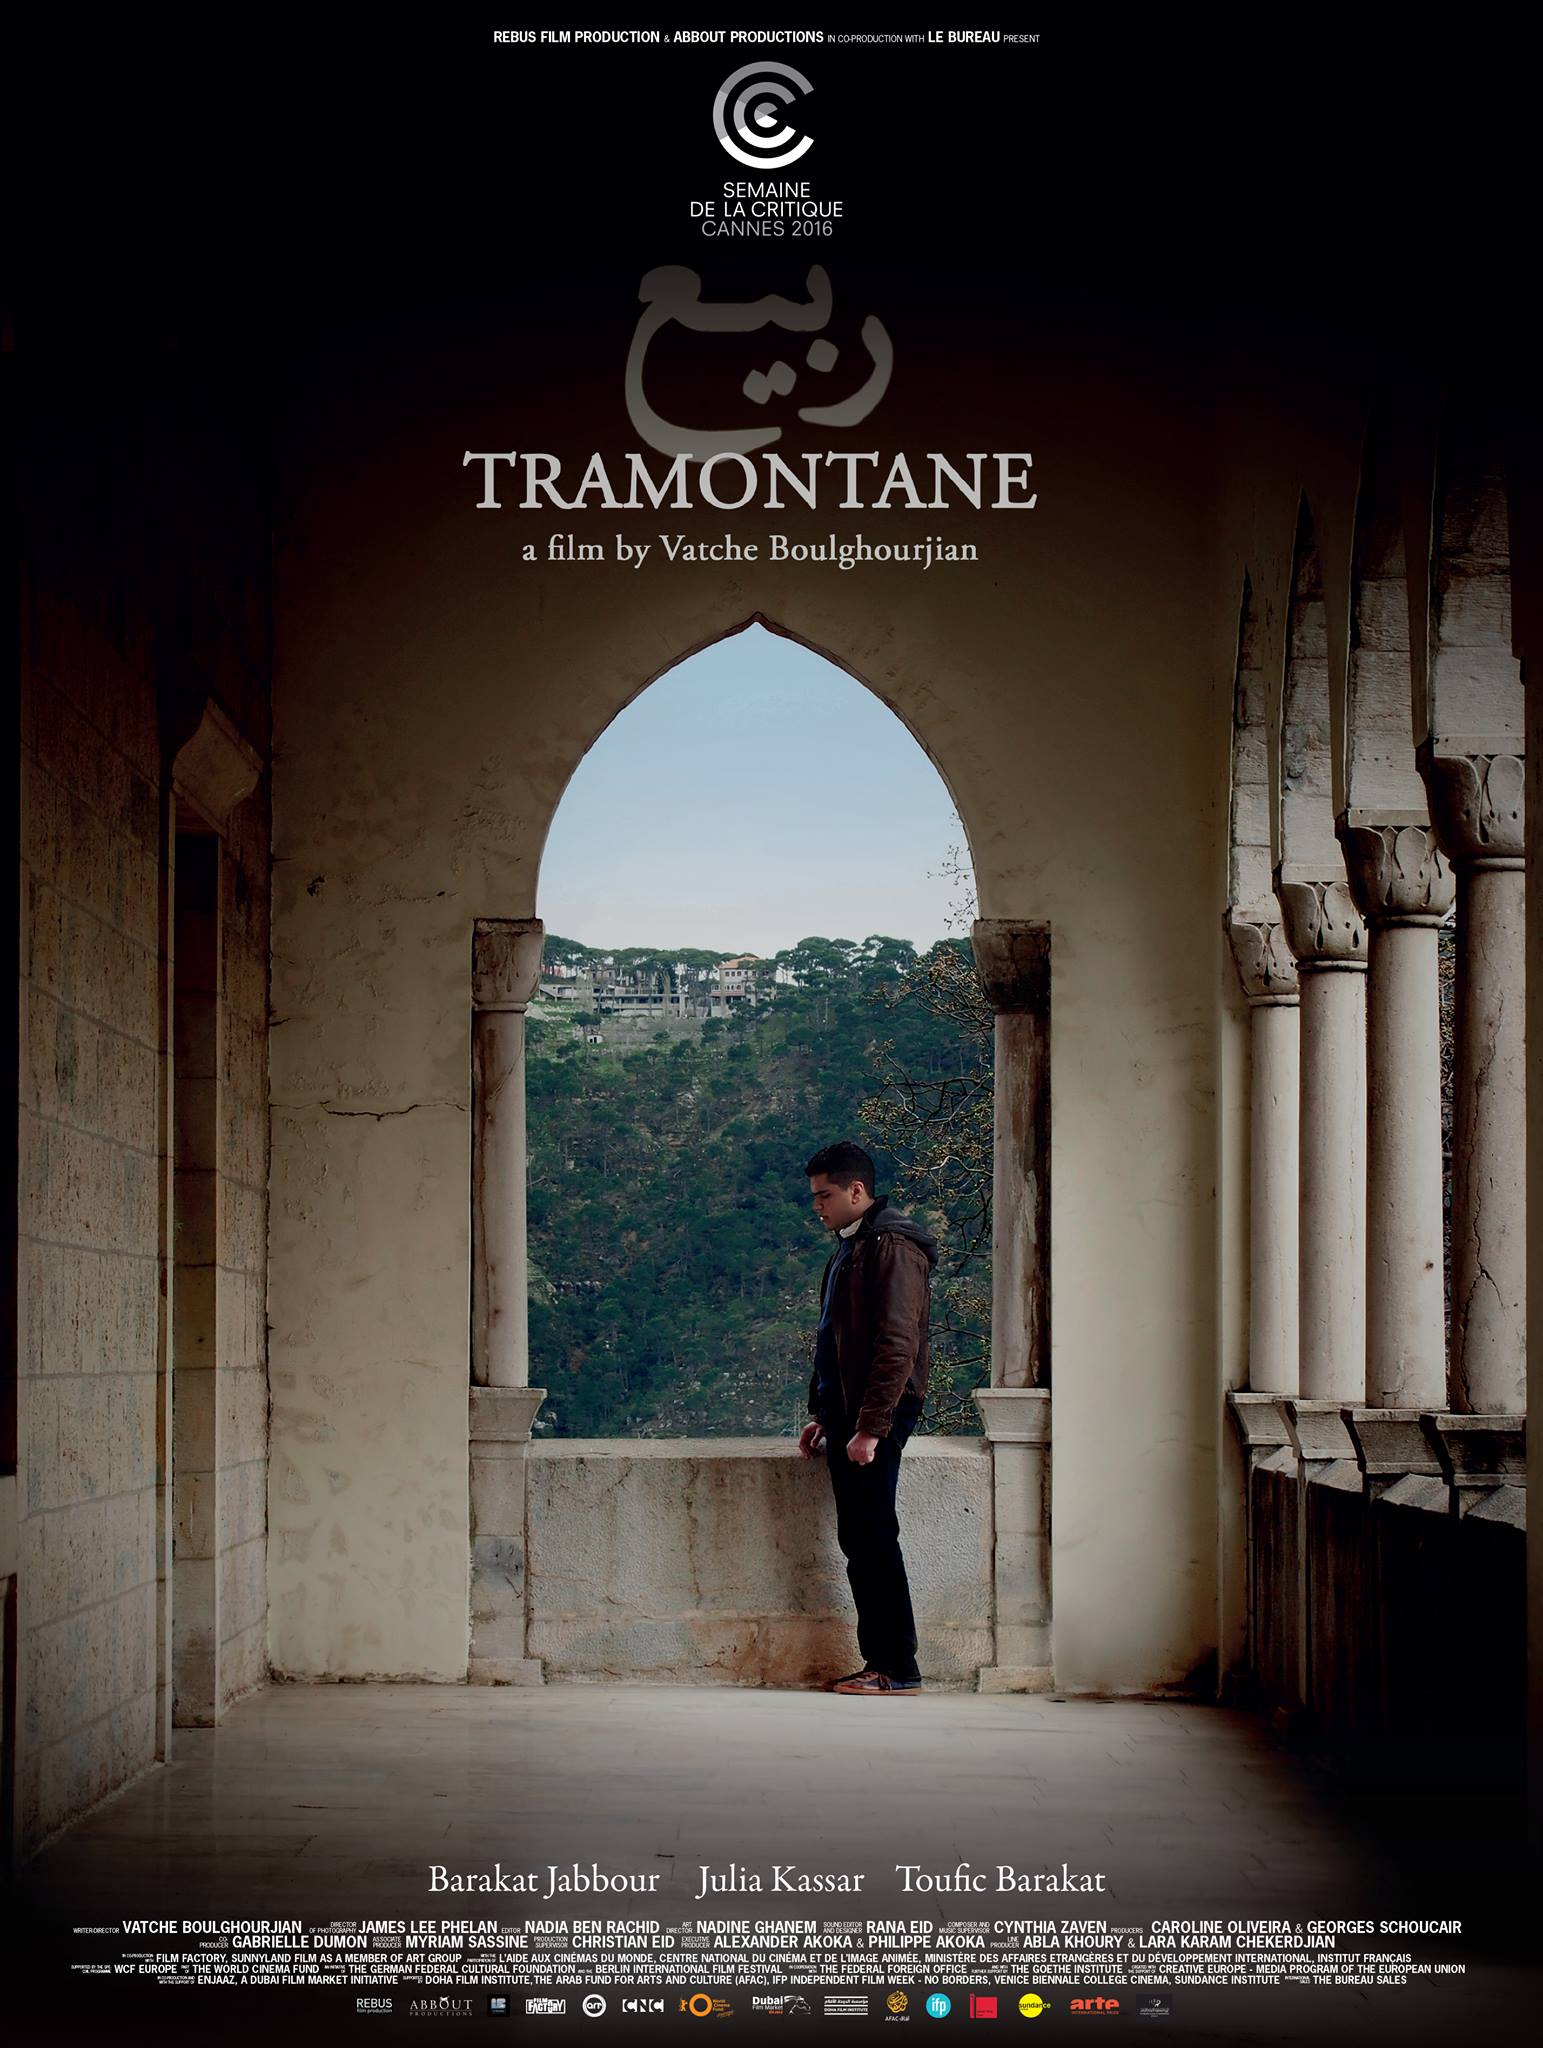 The official poster of Tramontane